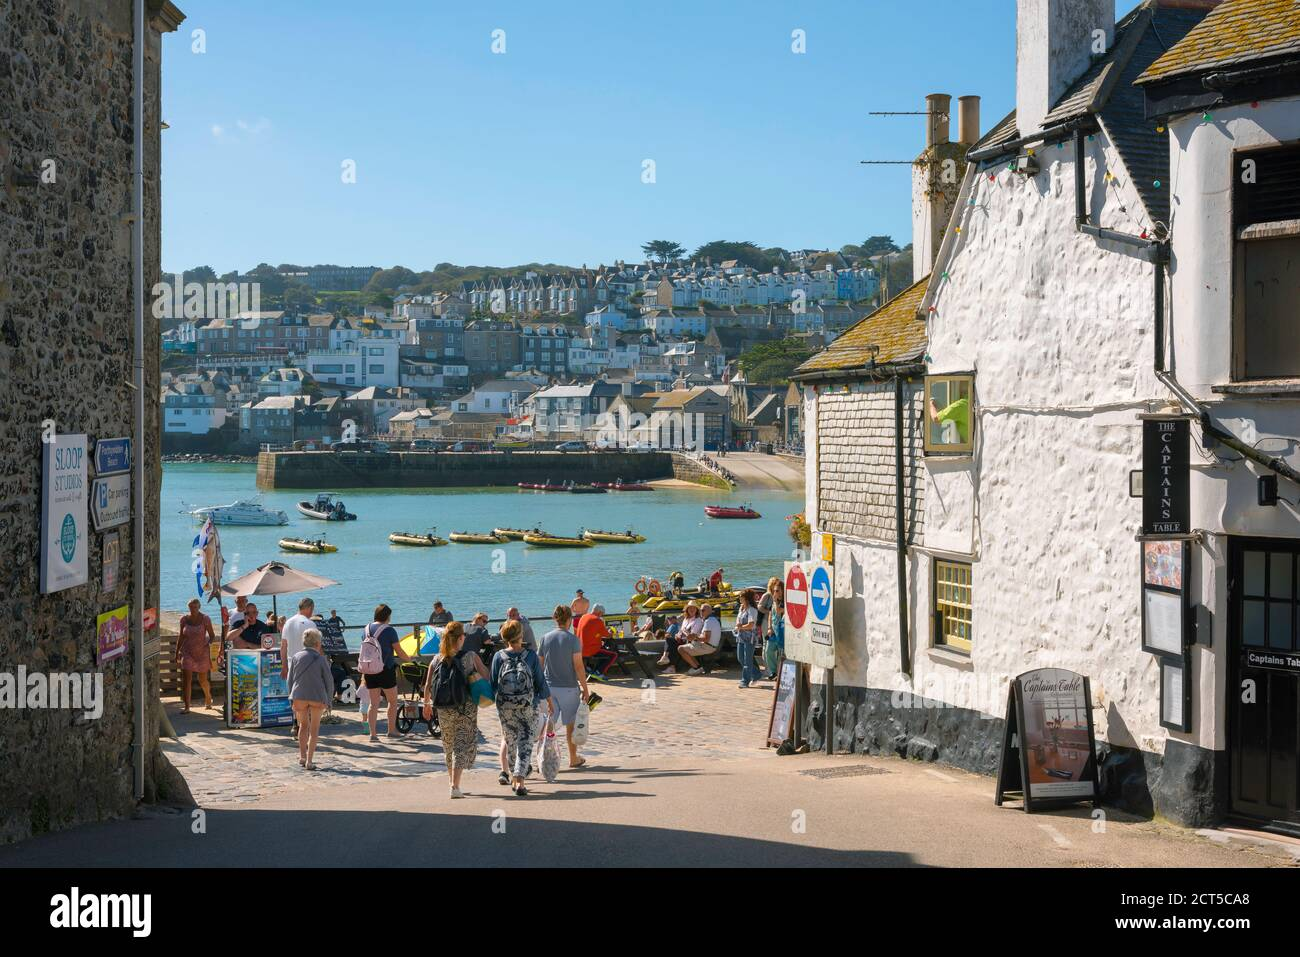 Cornwall town, view in summer of people approaching the harbour area in St Ives, Cornwall, south west England, UK Stock Photo